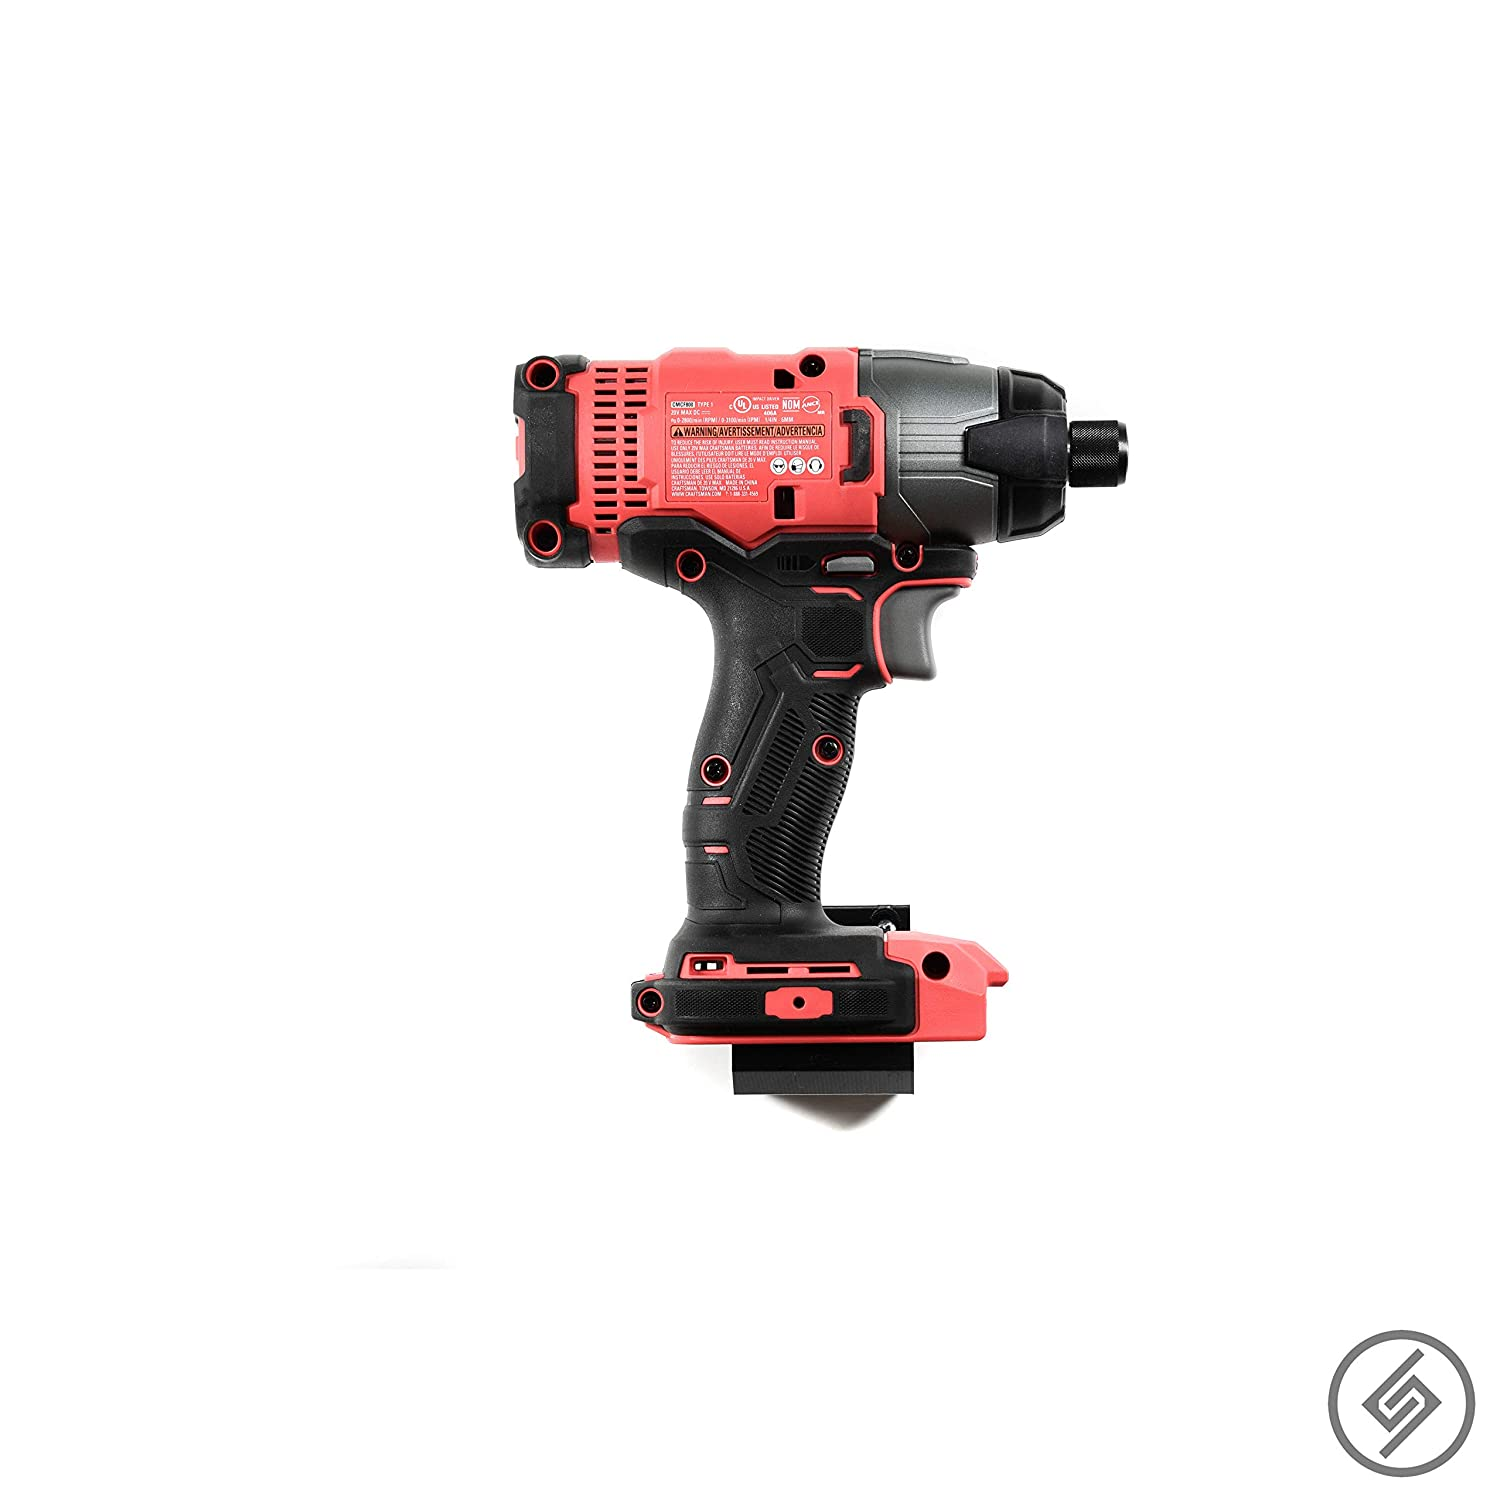 Power Tool Storage Wall Display Hook Holder Spartan Mount for Craftsman 20V Tool All Types Convenient Easy Access Garage Organization Blog DIY Craft Room Strong Low Profile Bracket